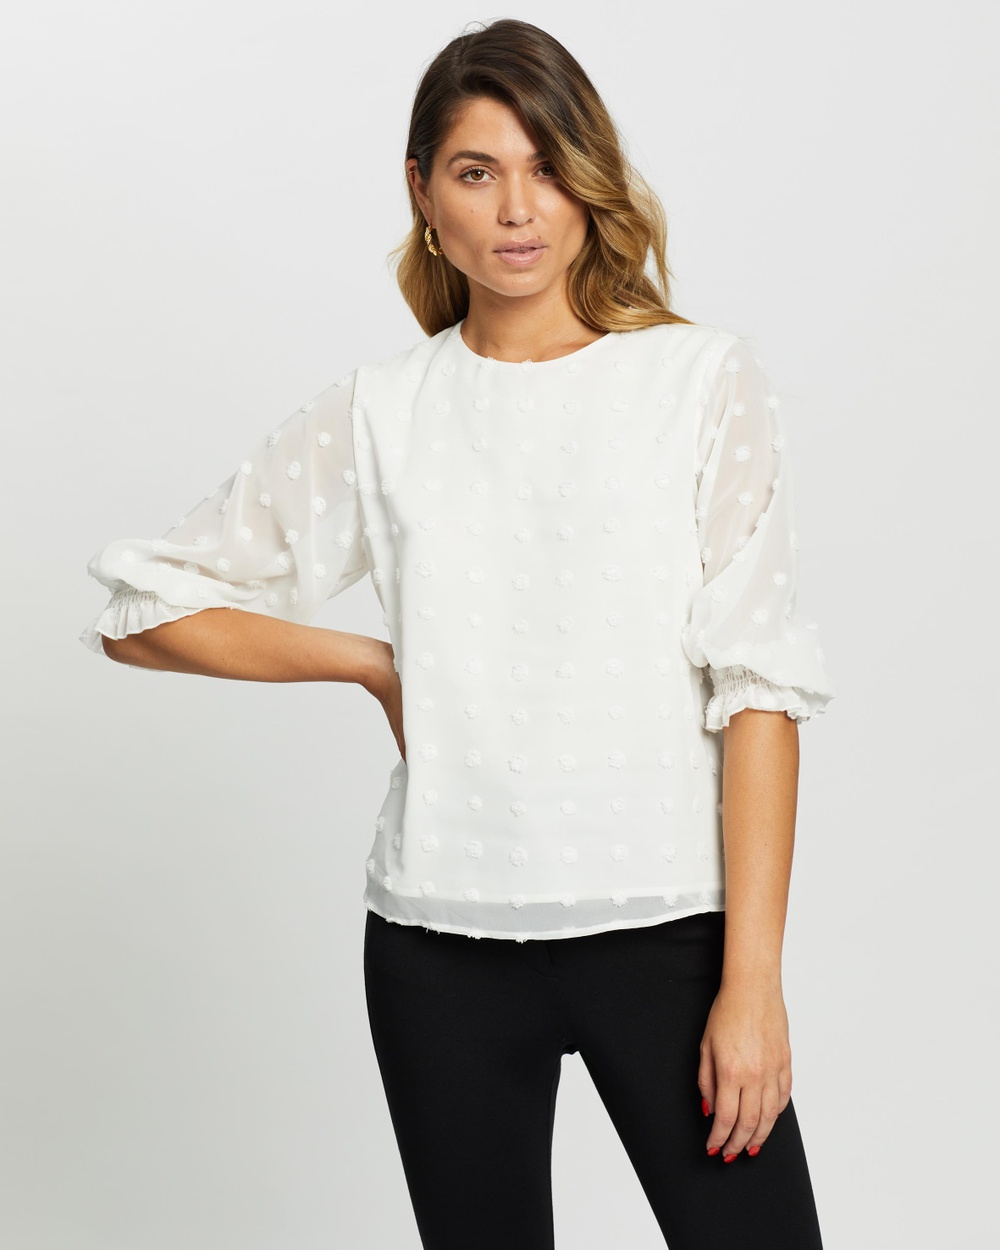 Atmos&Here - Sandy Blouse - Tops (White) Sandy Blouse